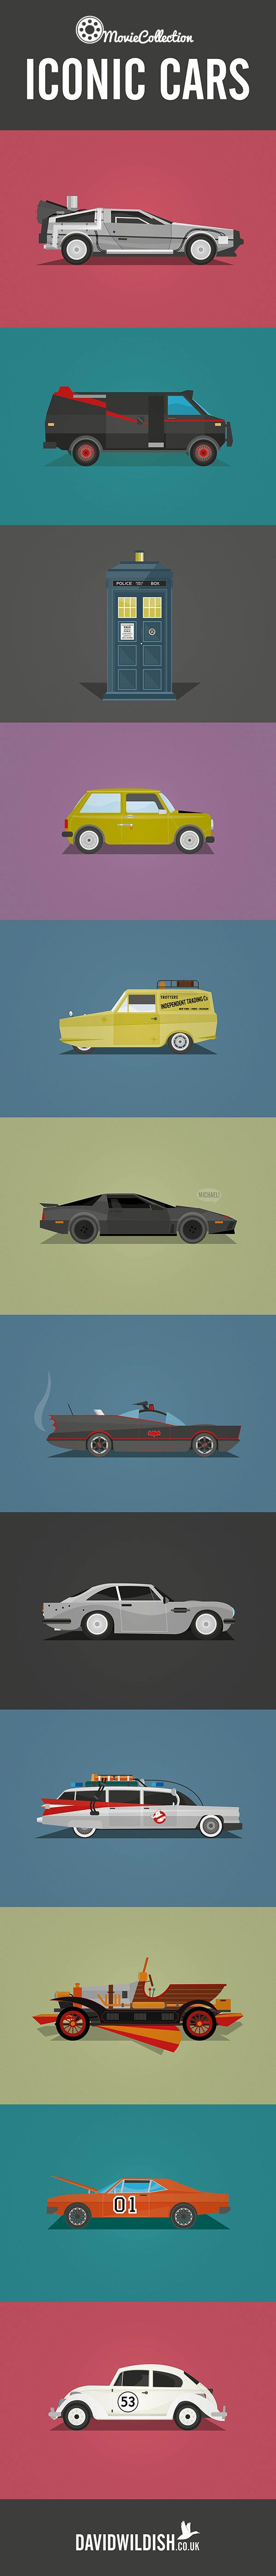 The ultimate collection of iconic #cars from both TV and the movies lovingly illustrated. Hit the pic to see if you can name them all.